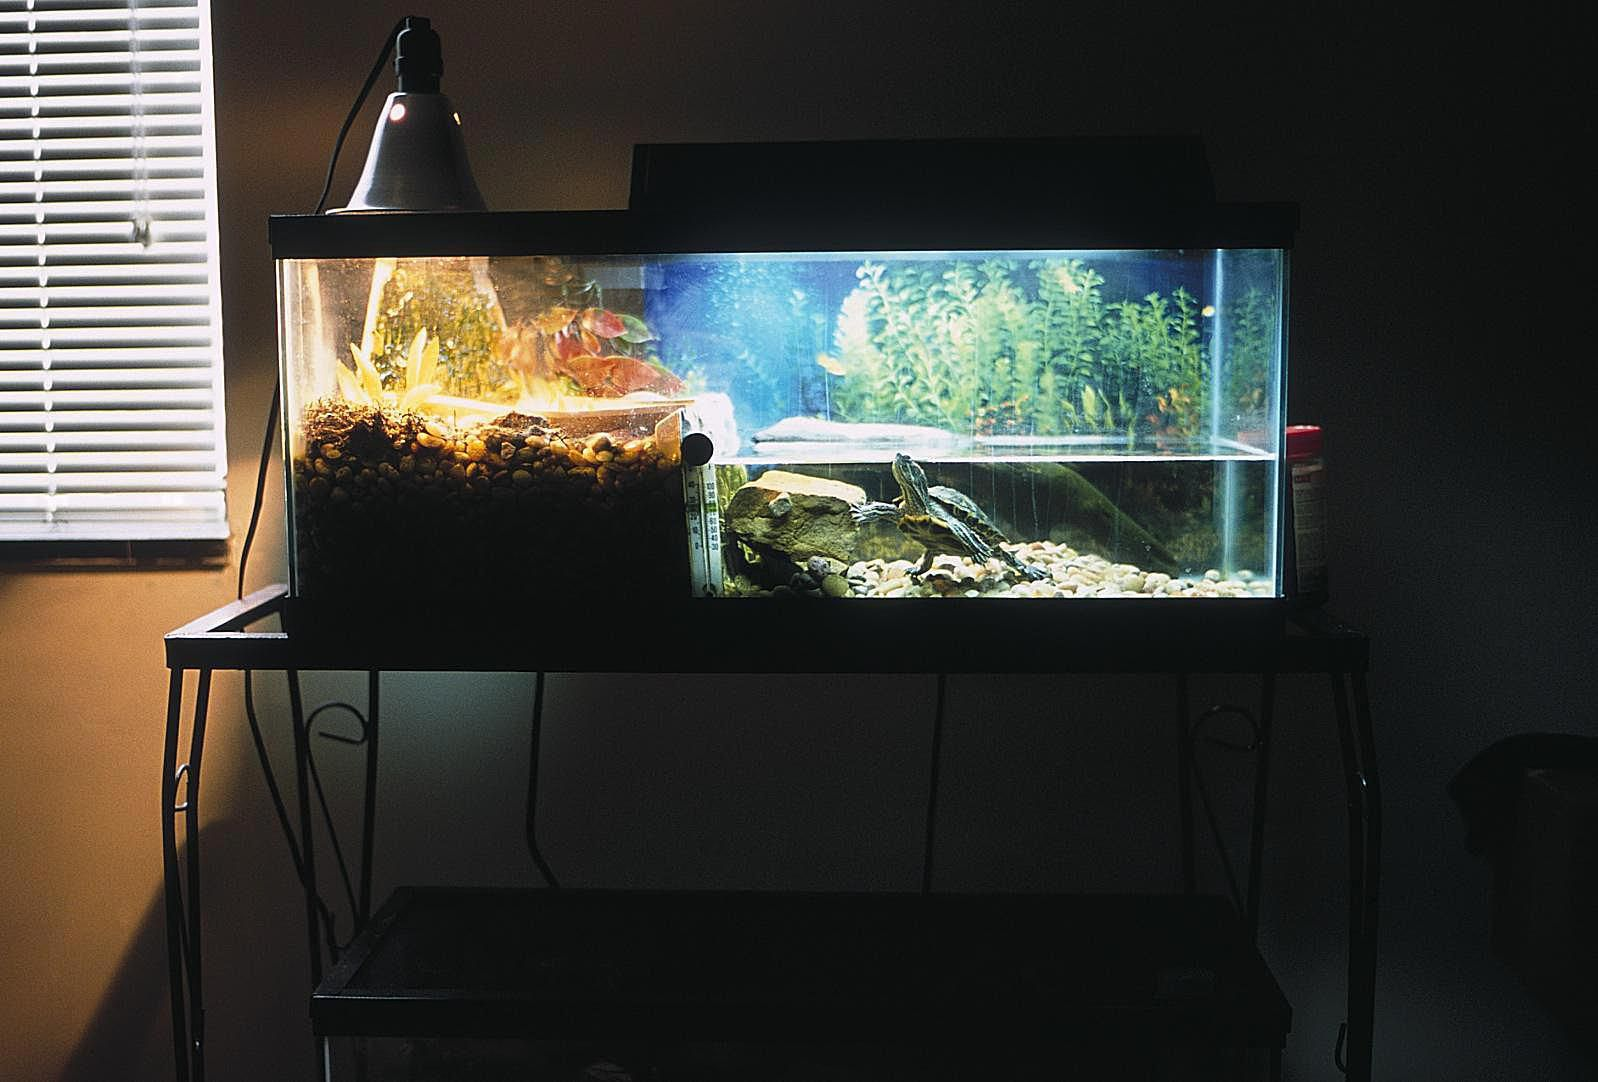 Keeping Red eared sliders' tanks clean can be a challenge